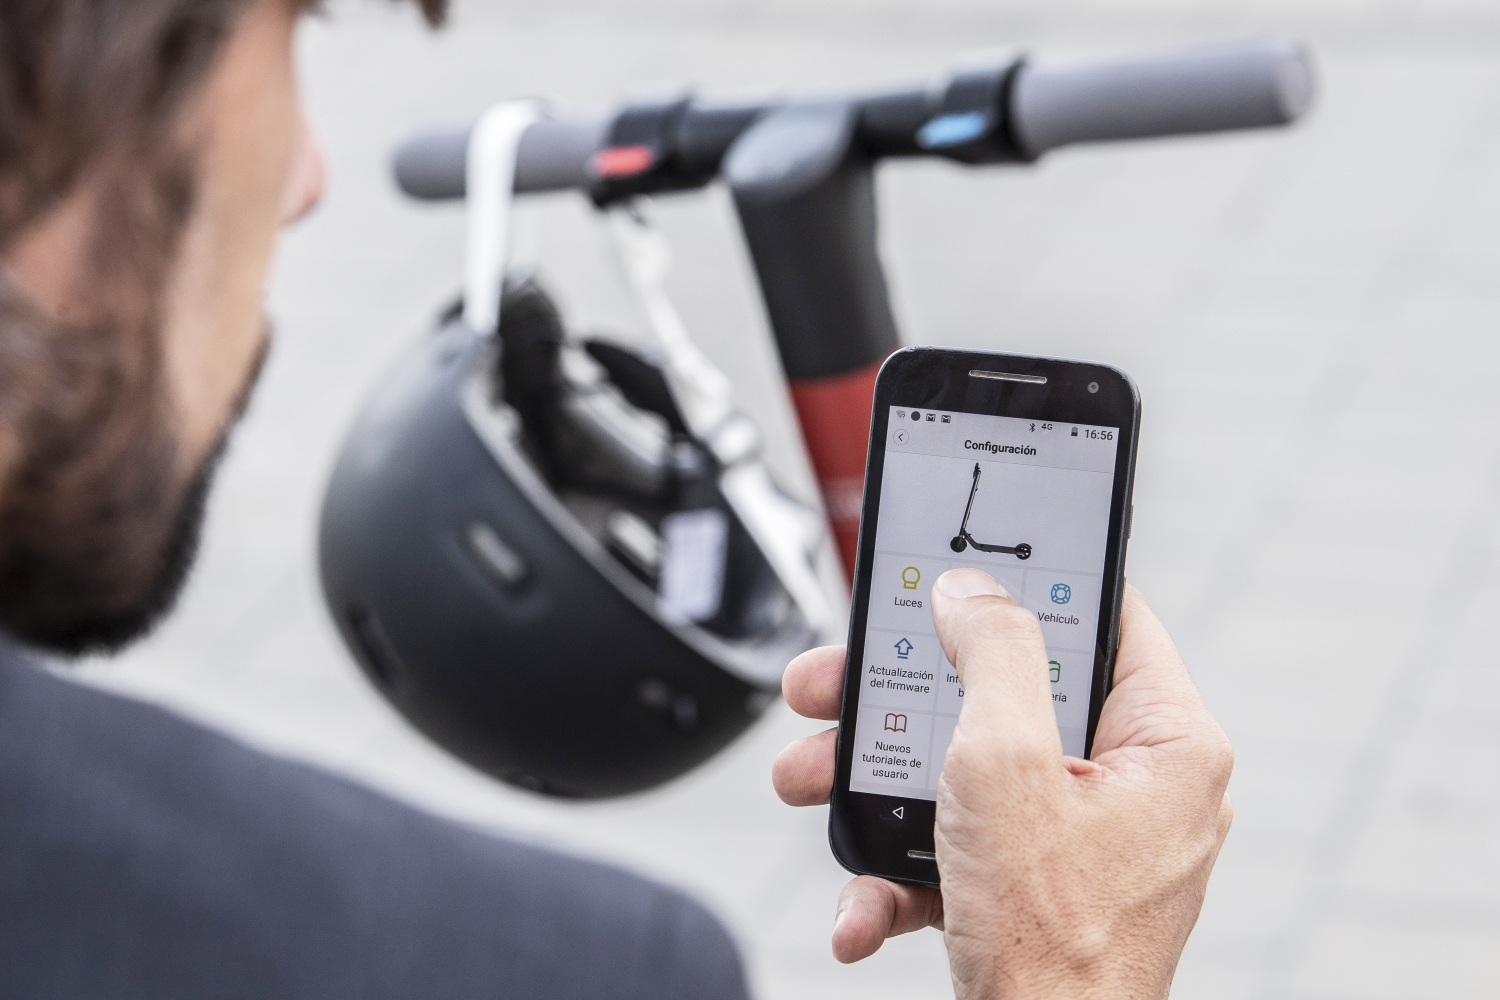 Another car company gets into electric scooters as SEAT reveals new e-scooter designed with Segway